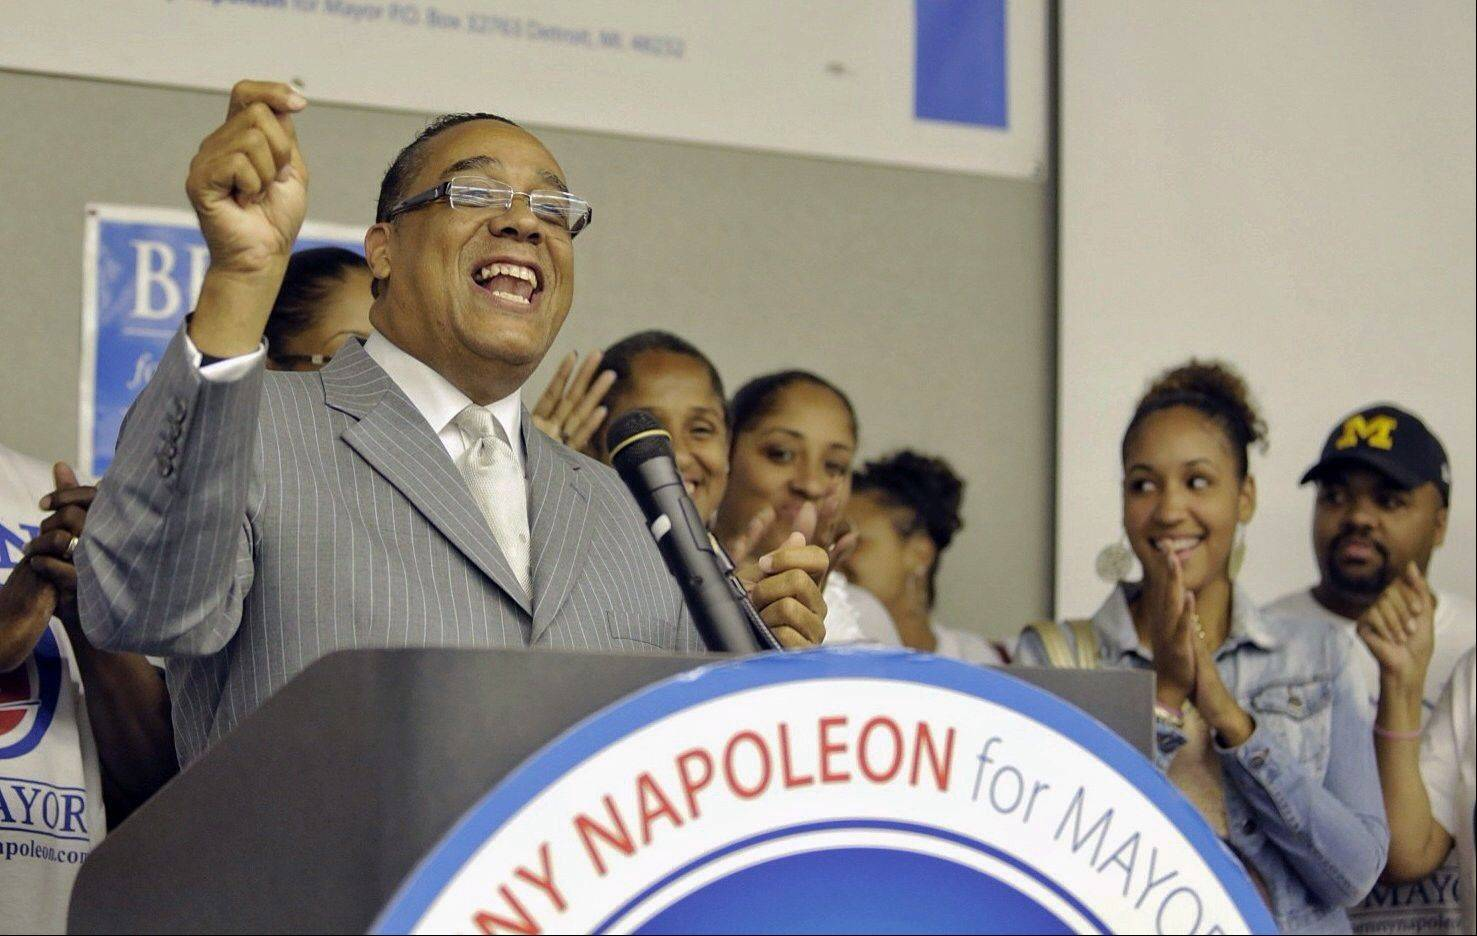 Detroit mayoral candidate Benny Napoleon addresses supporters after the final primary election results continue to come in at the Michigan Conference of Teamsters Welfare Fund building in Detroit on Tuesday, Aug. 6, 2013.